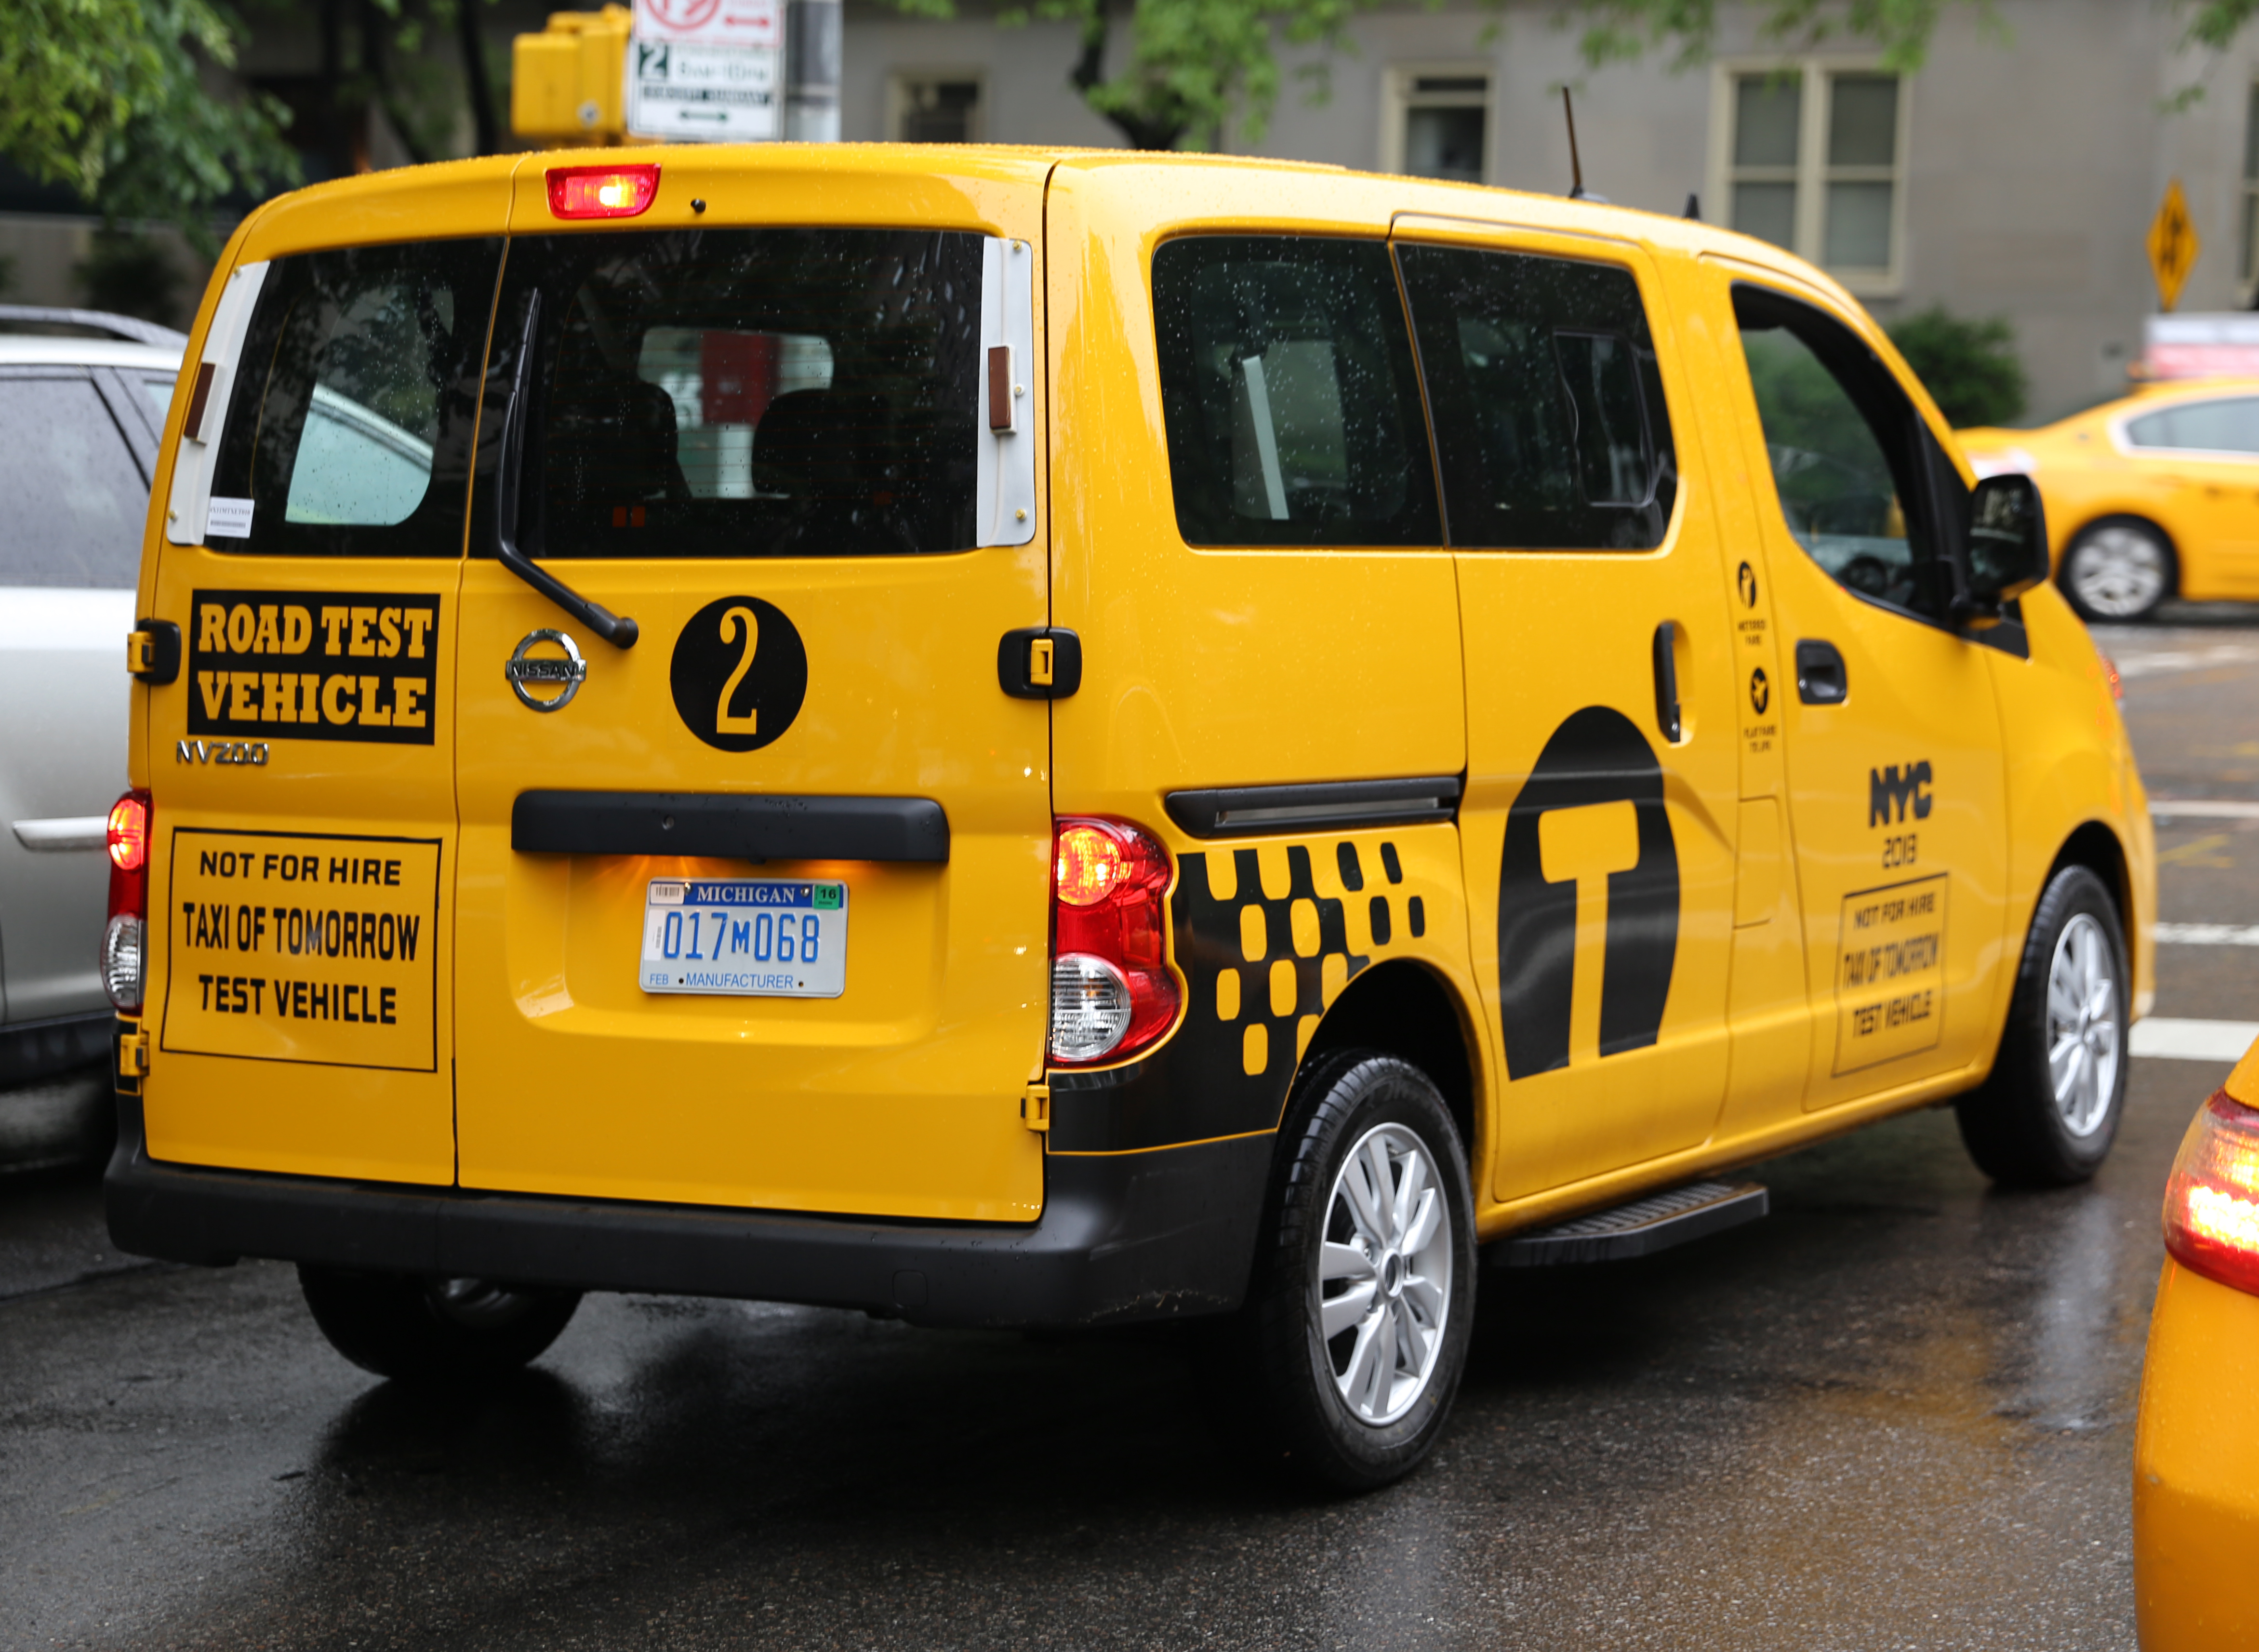 File Nissan Nv200 Quot Taxi Of Tomorrow Quot Test Vehicle Rear